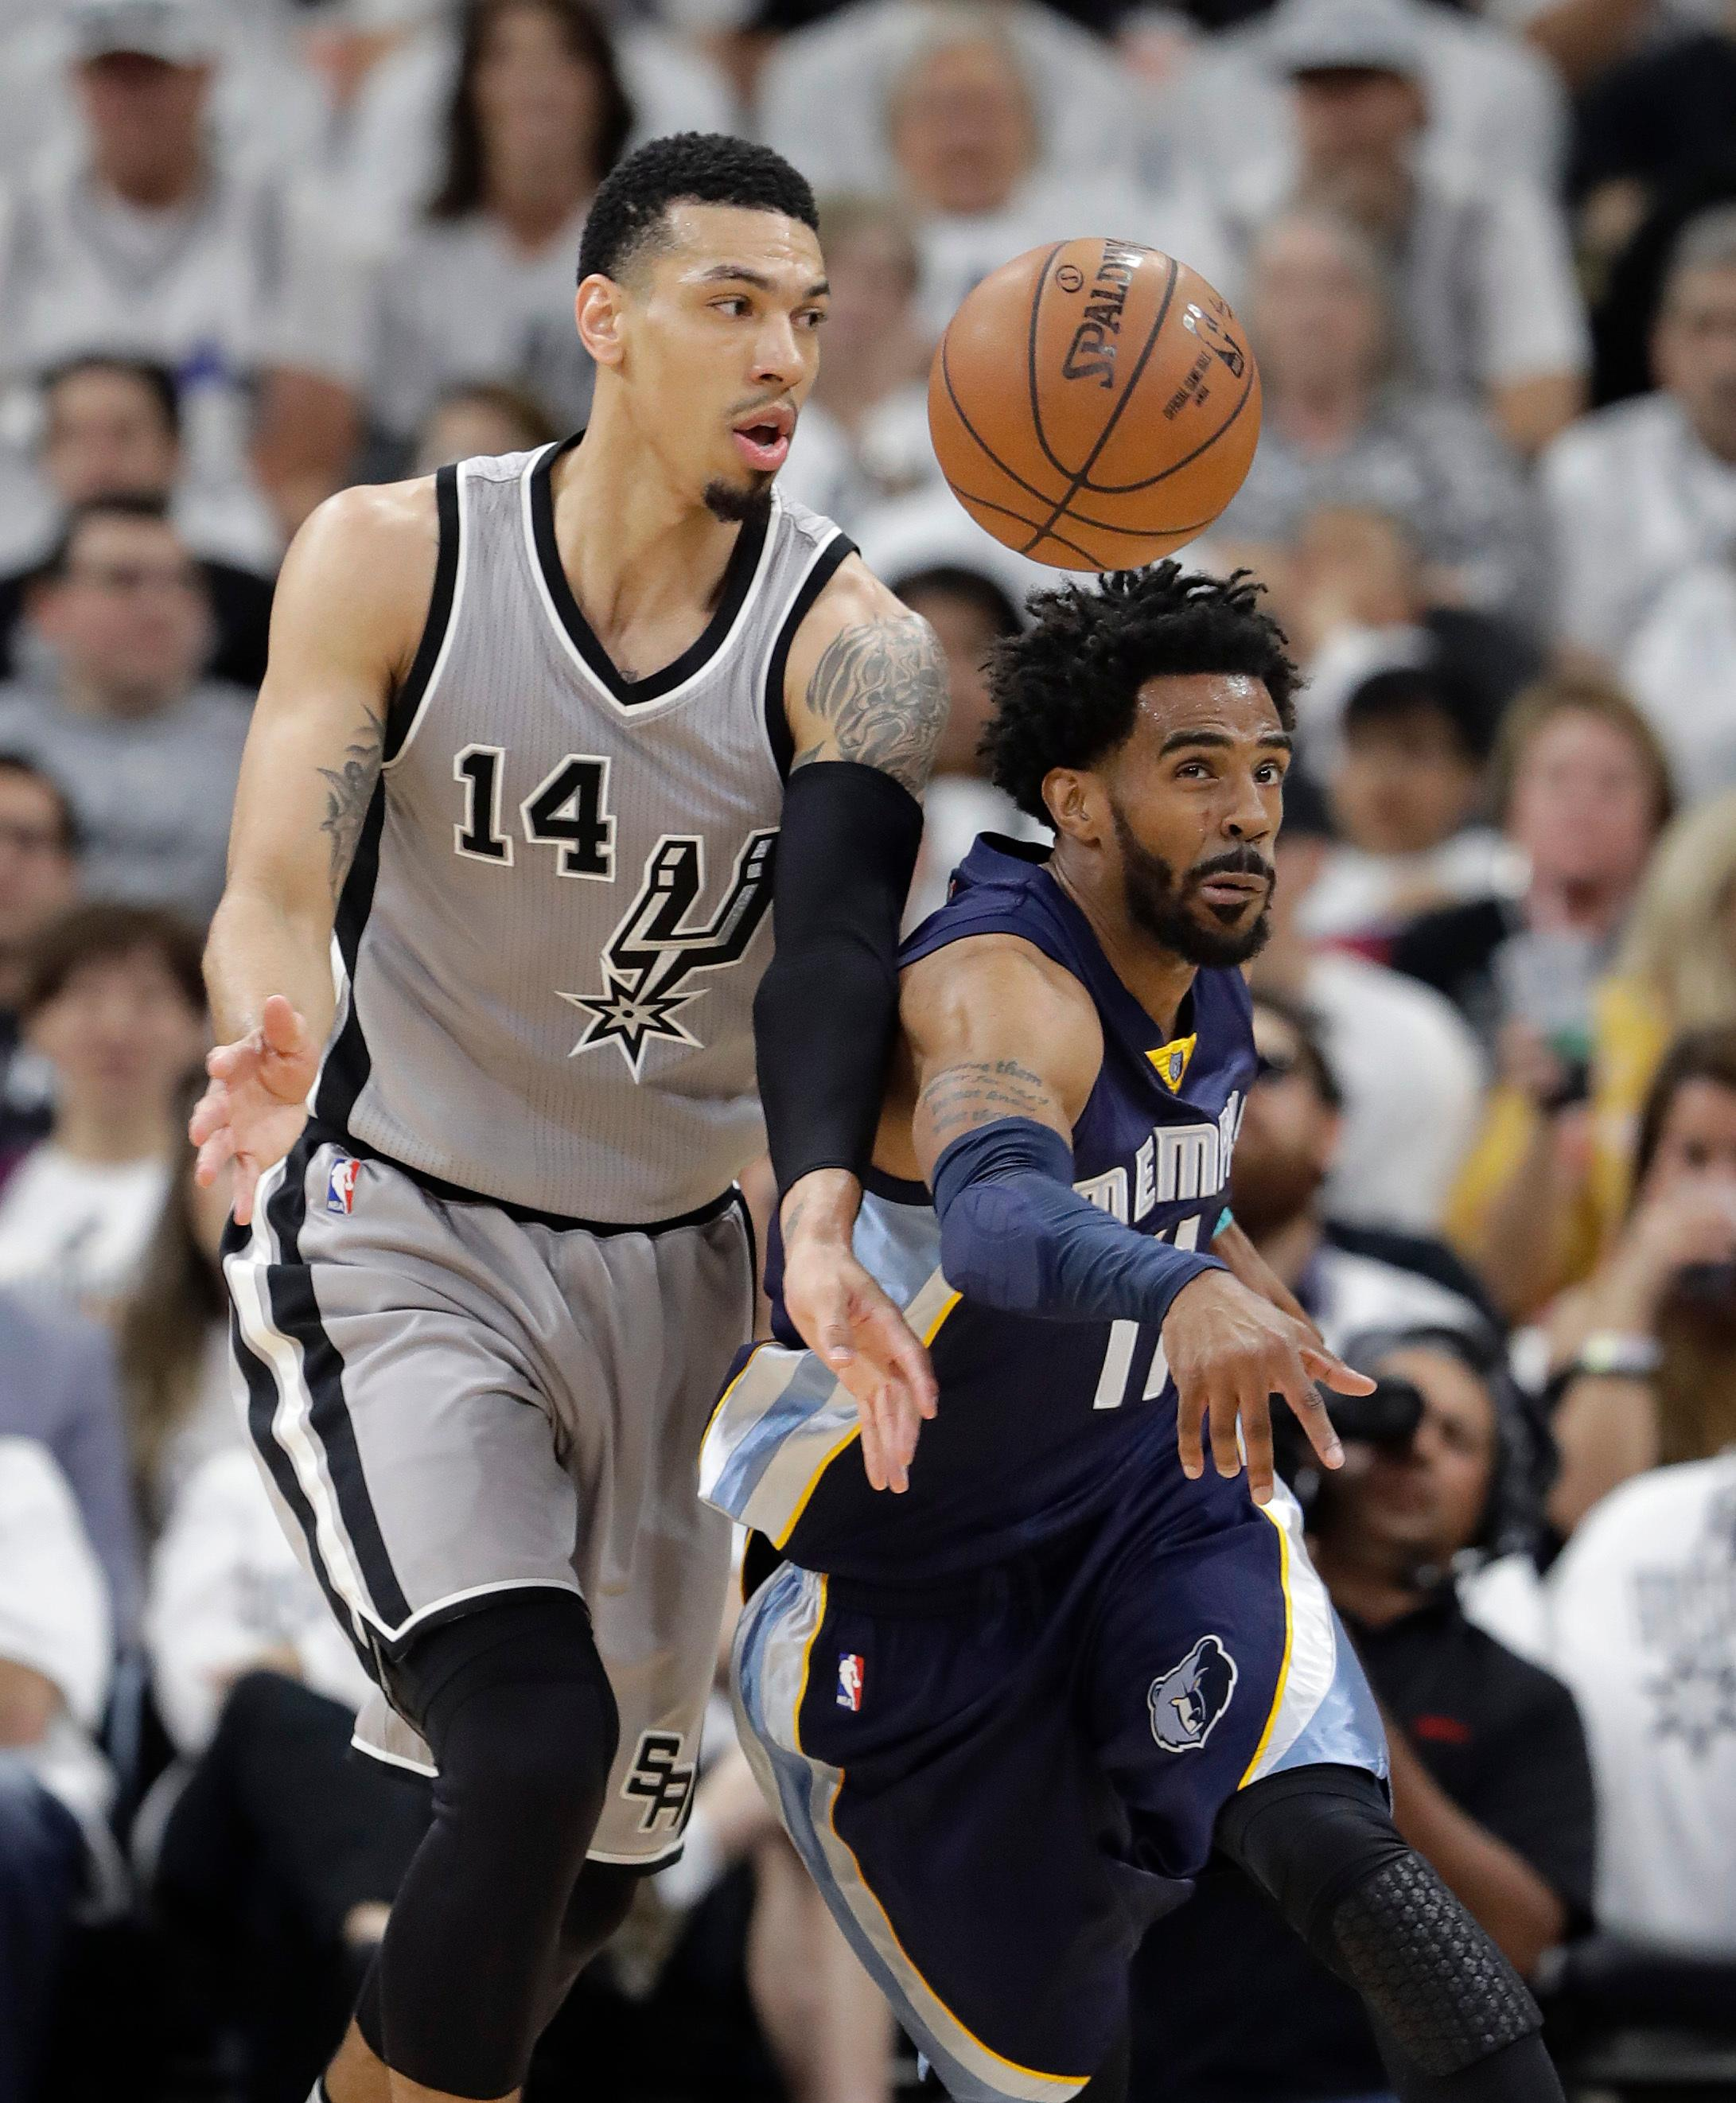 Memphis Grizzlies guard Mike Conley (11) knocks the ball away from San Antonio Spurs guard Danny Green (14) during Game 1 of a first-round NBA basketball playoff series, Saturday, April 15, 2017, in San Antonio. (AP Photo/Eric Gay)